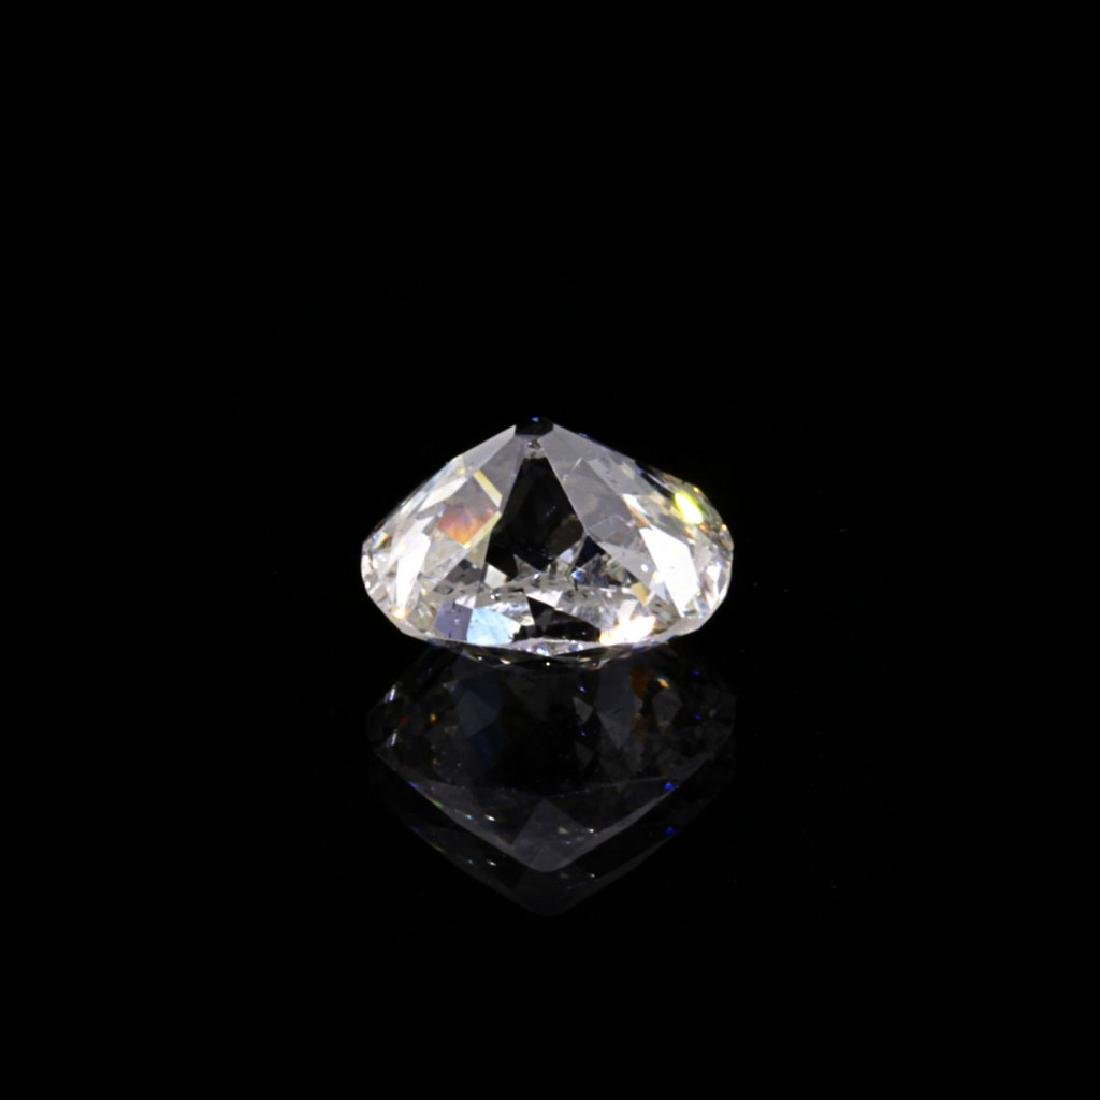 0.99 Ct. Natural G Color Old cut diamond. - 5